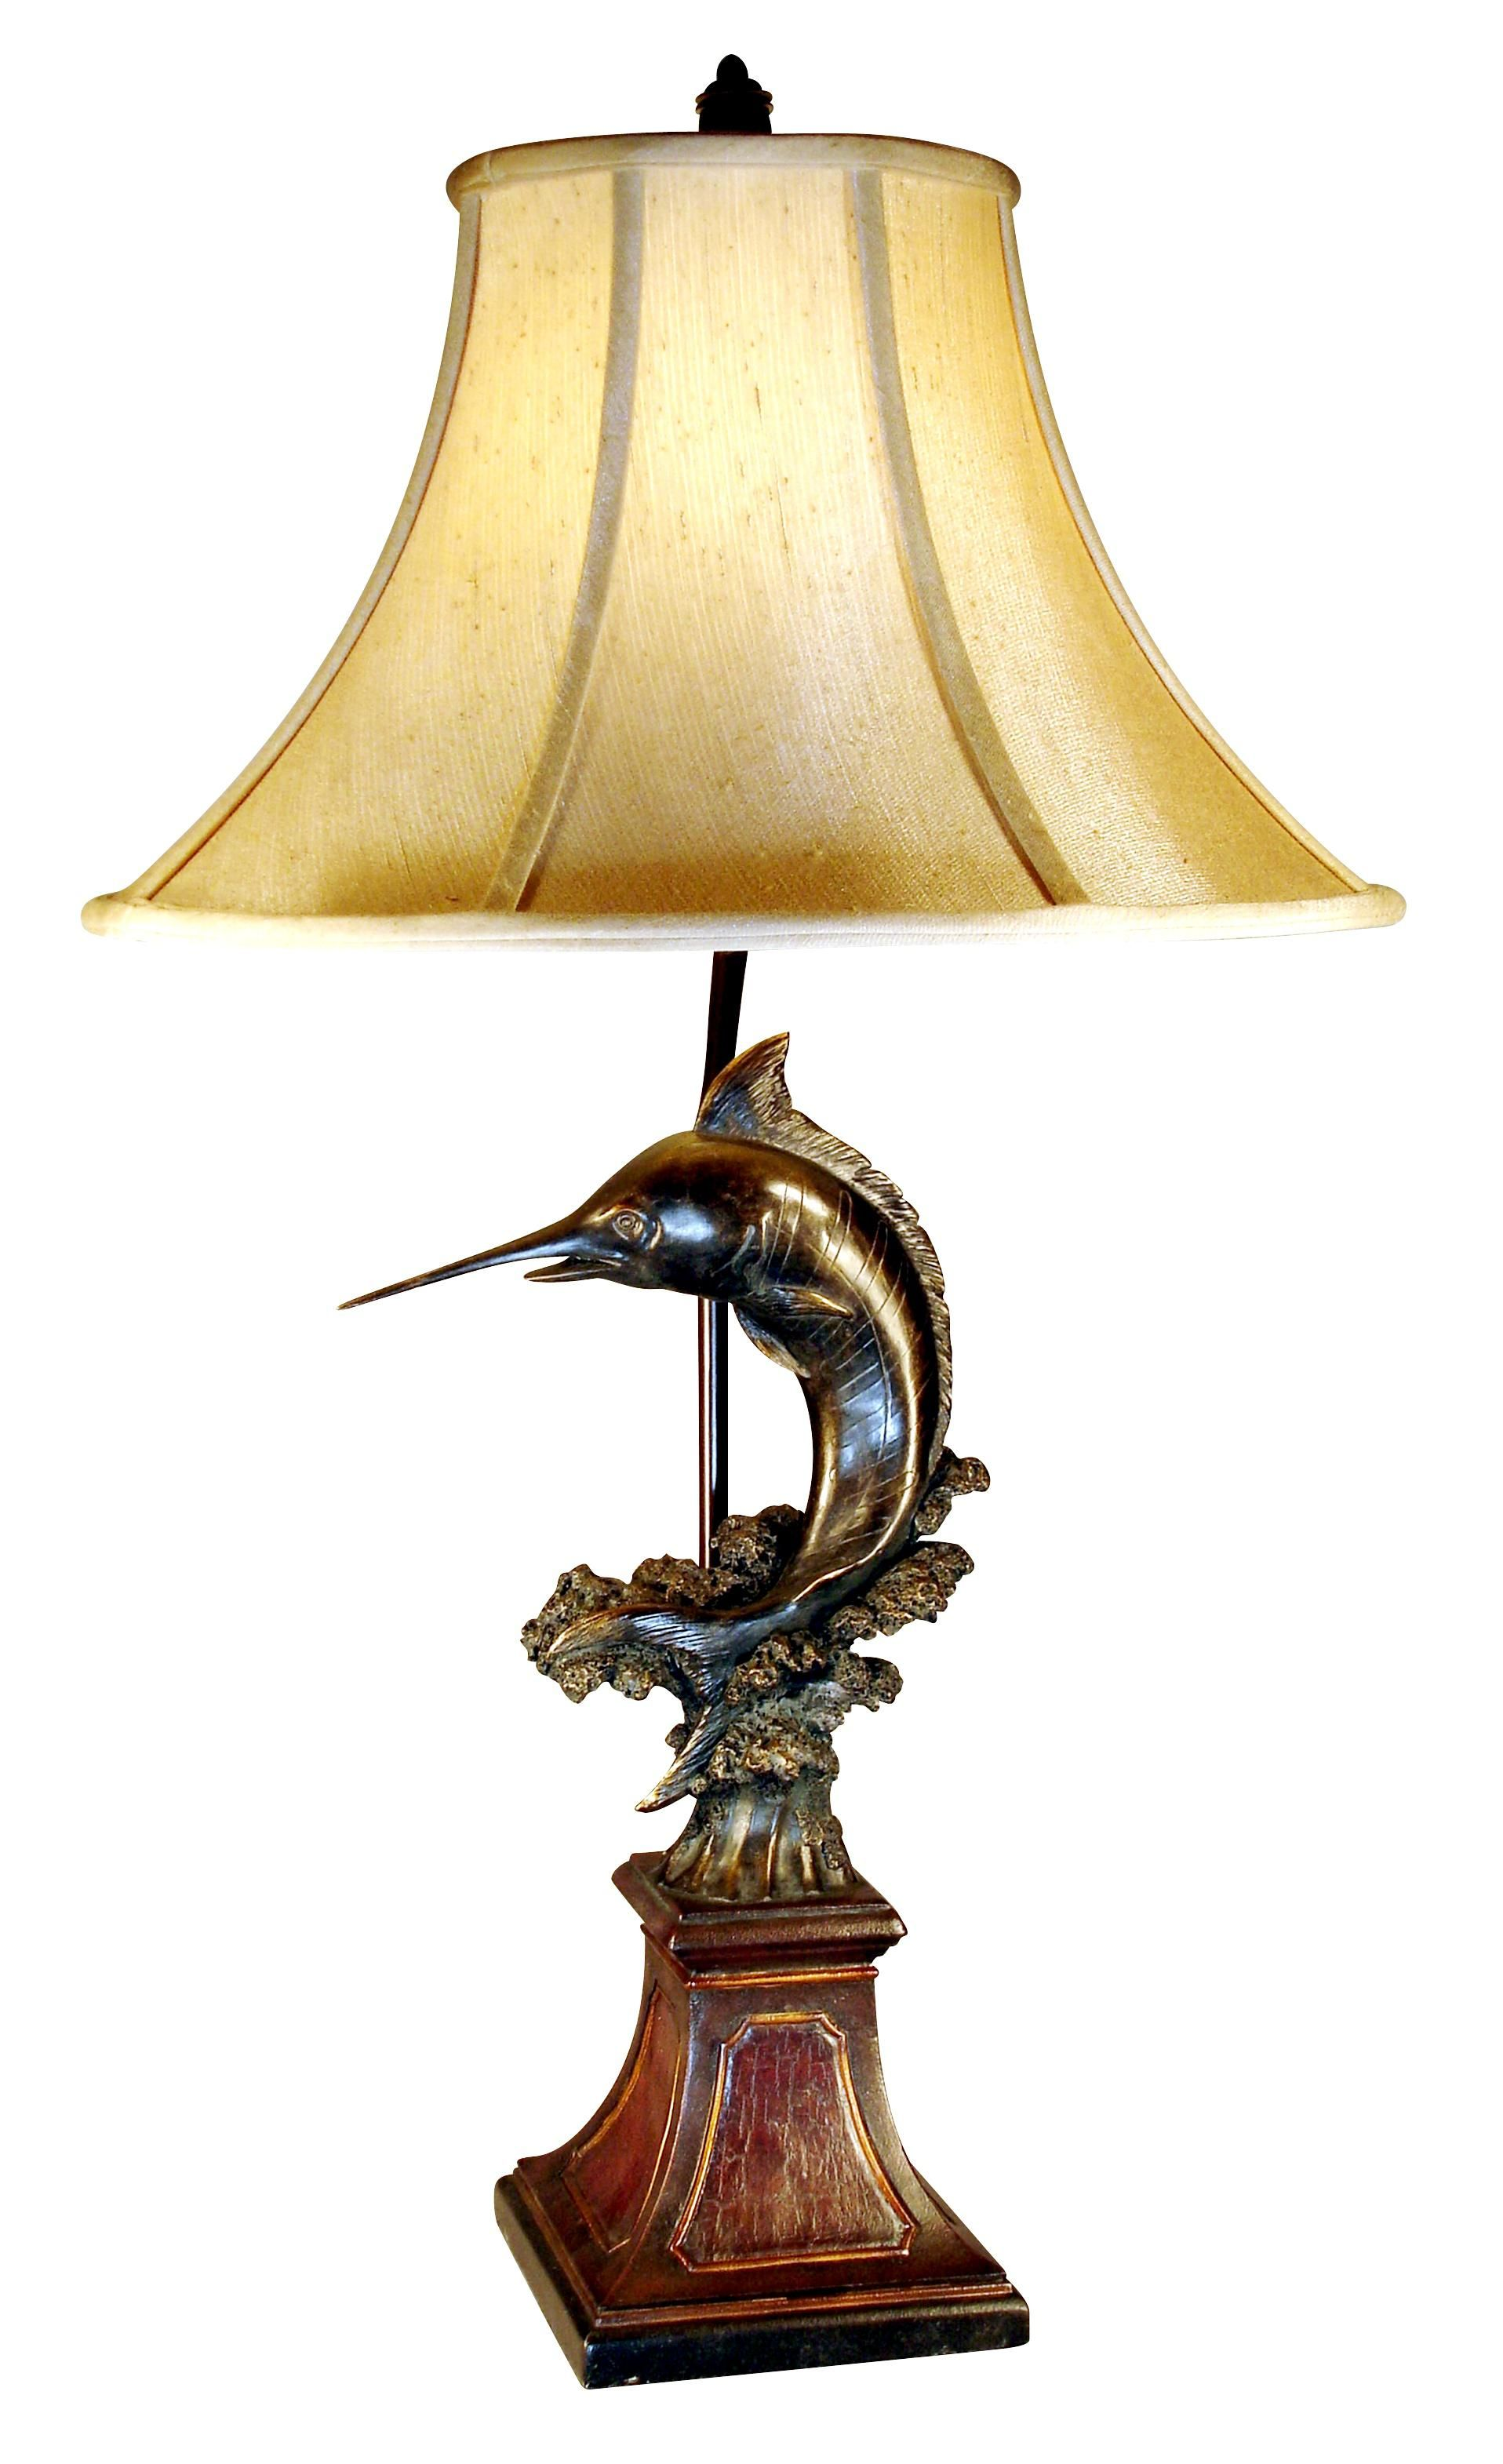 Leaping Marlin Fish Table Lamp - X' Lamps